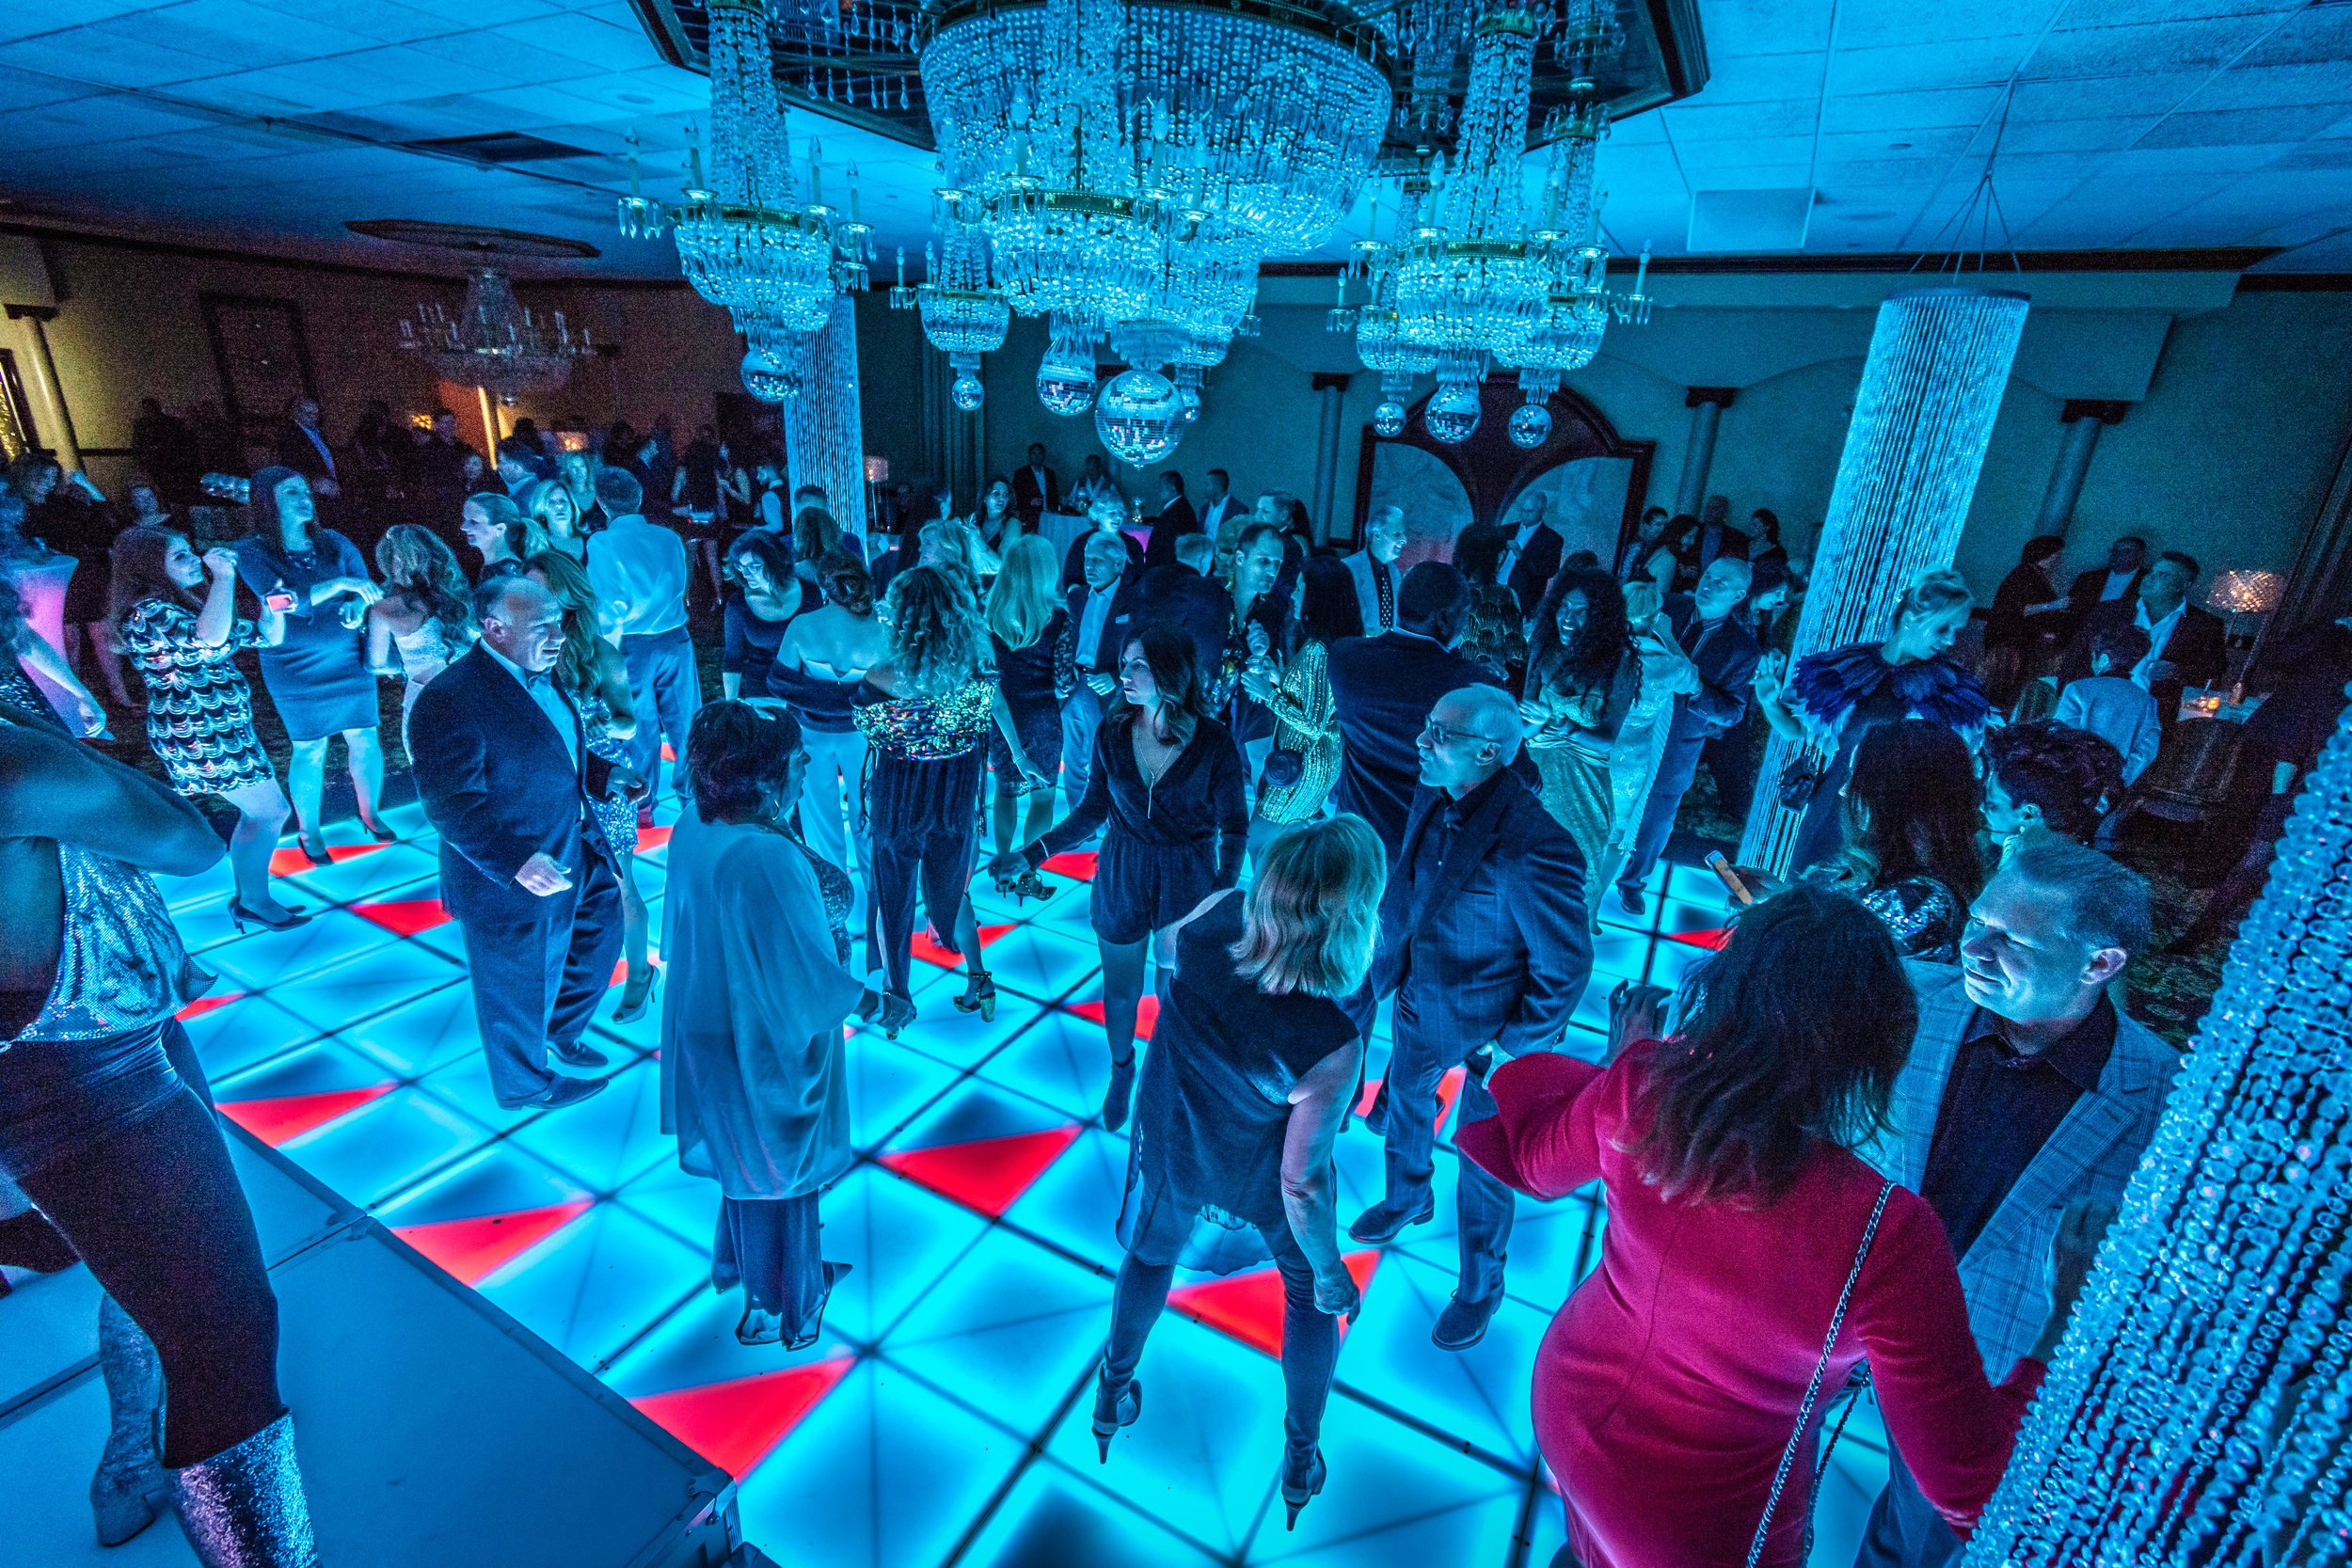 LED Dance Floor Blue Red 3.jpg